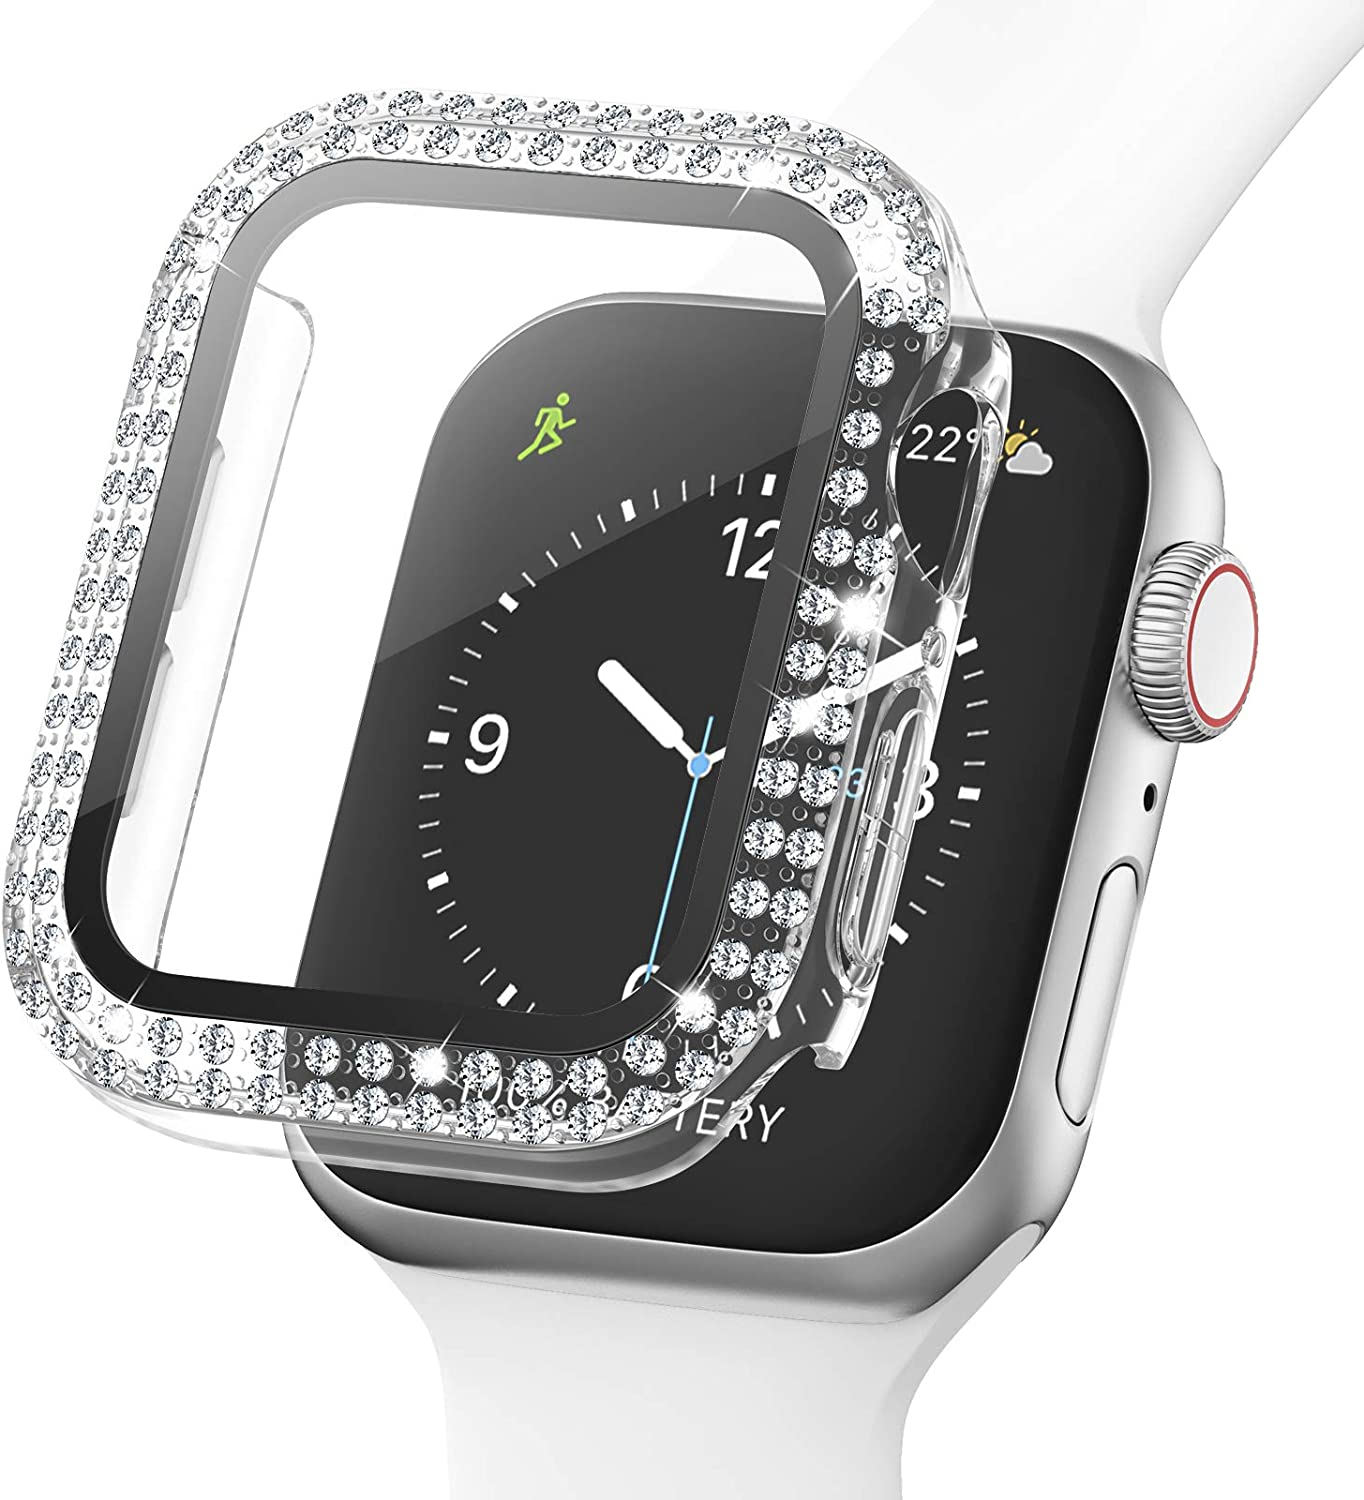 Adepoy Bling Case for Apple Watch 40mm Series 6/5/4/SE with Tempered Glass Screen Protector, Double Diamond Rhinestone All-Around Ultra-Thin Bumper Protective Cover for iWatch Women Girls(clear)